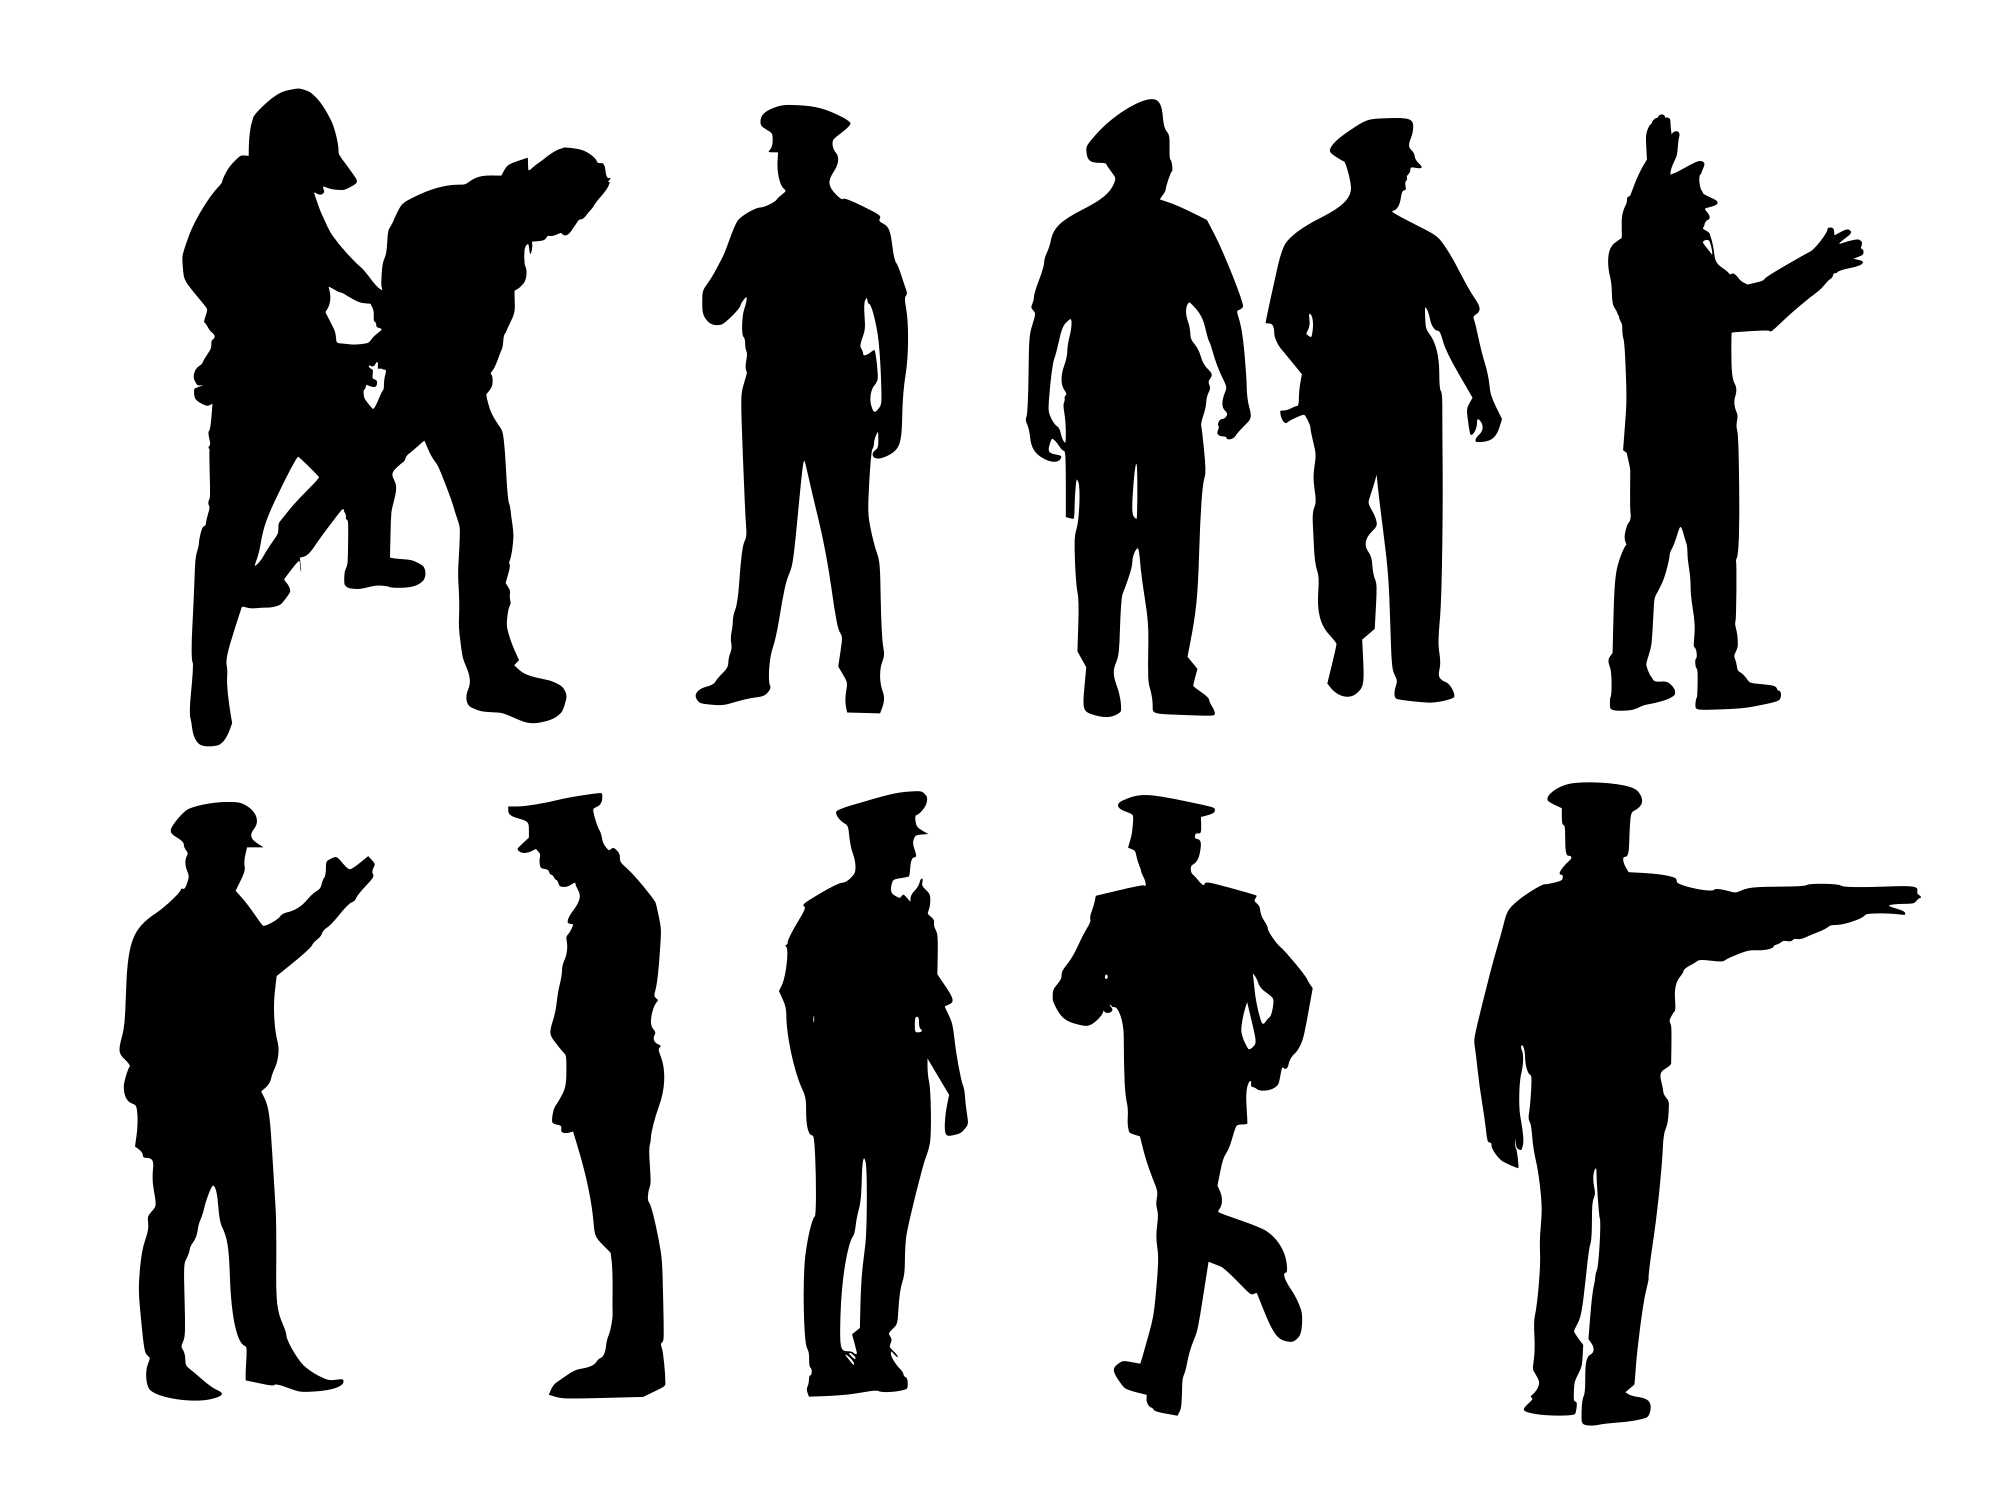 police-officer-silhouette-cover.jpg